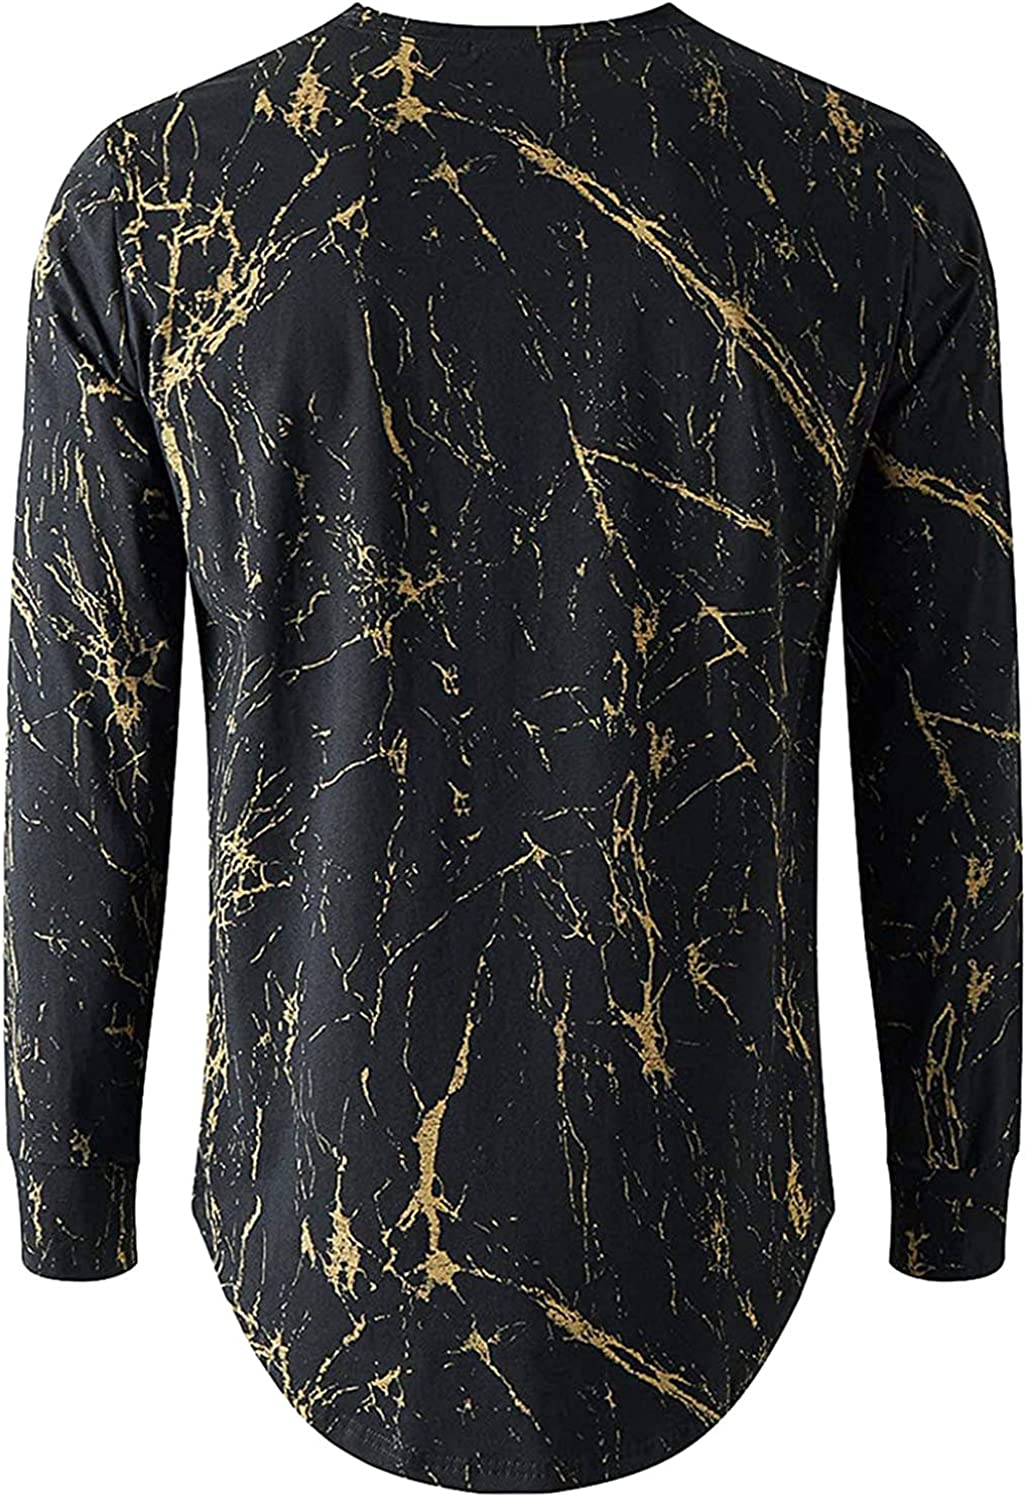 xoxing Long Sleeve for Men Casual Plus Size Loose Round Neck Hem Printed Top T Shirts Top Blouse Pullover Autumn